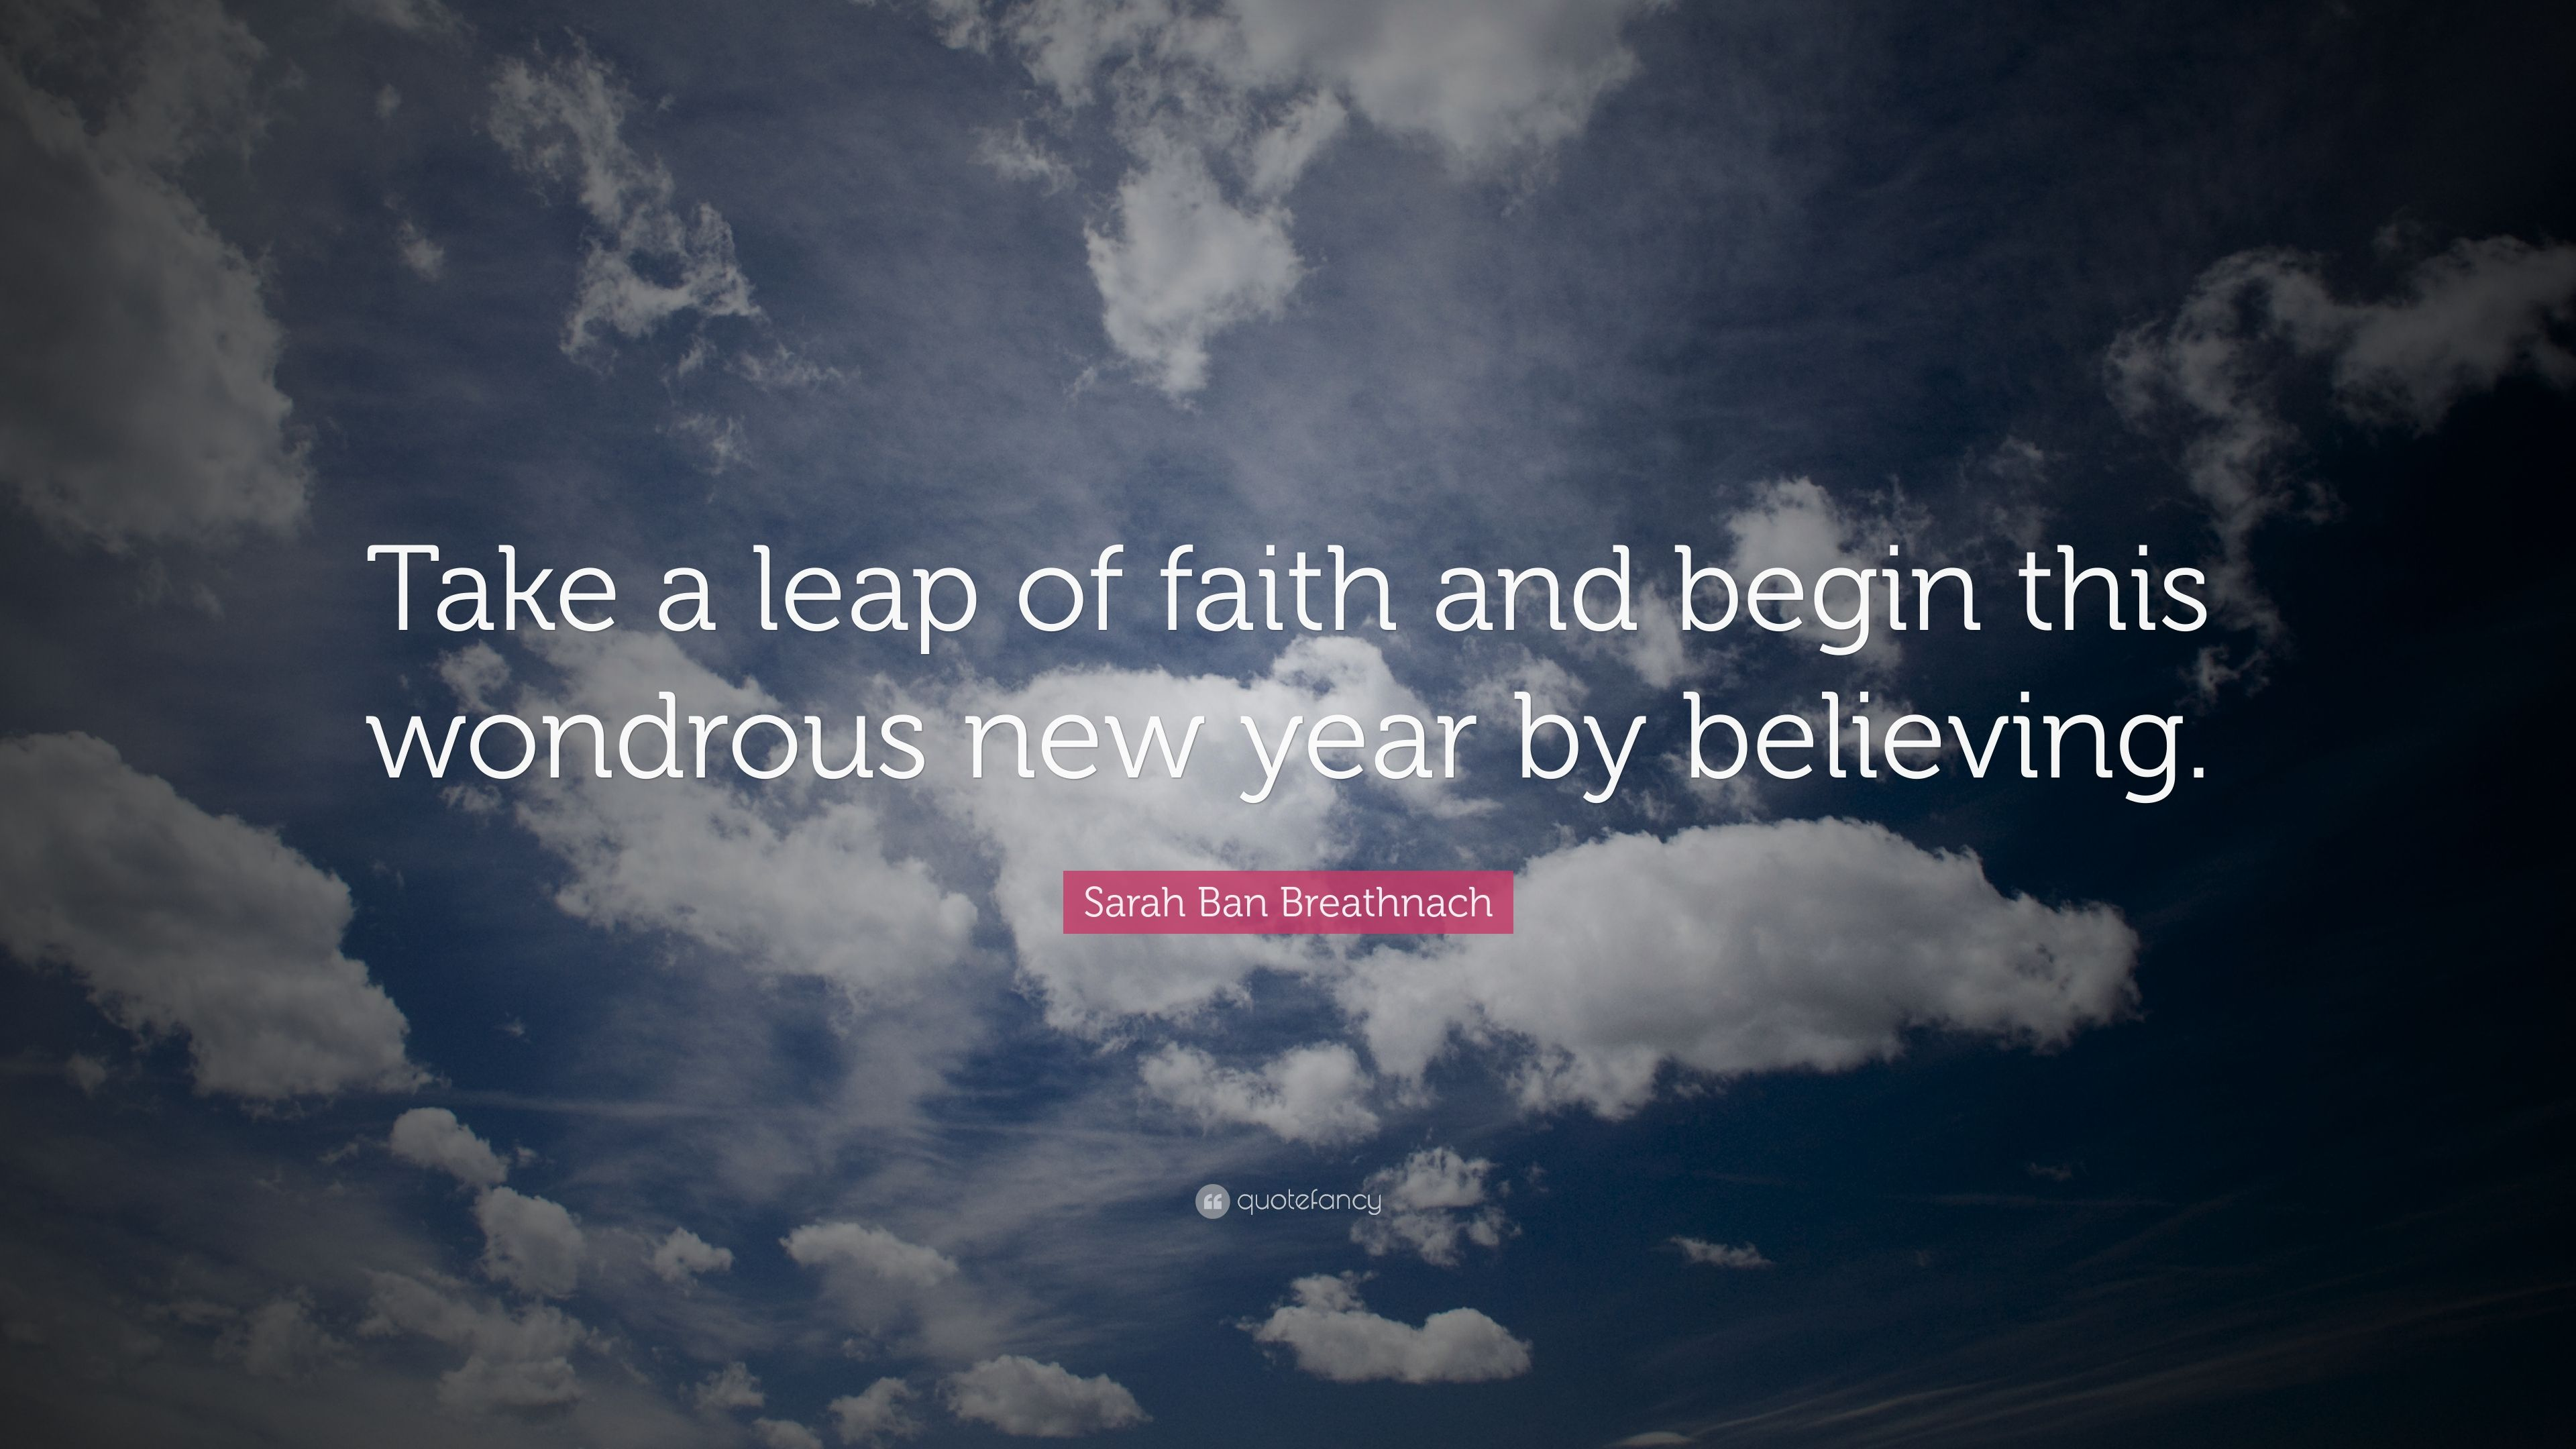 Sarah Ban Breathnach Quote Take A Leap Of Faith And Begin This